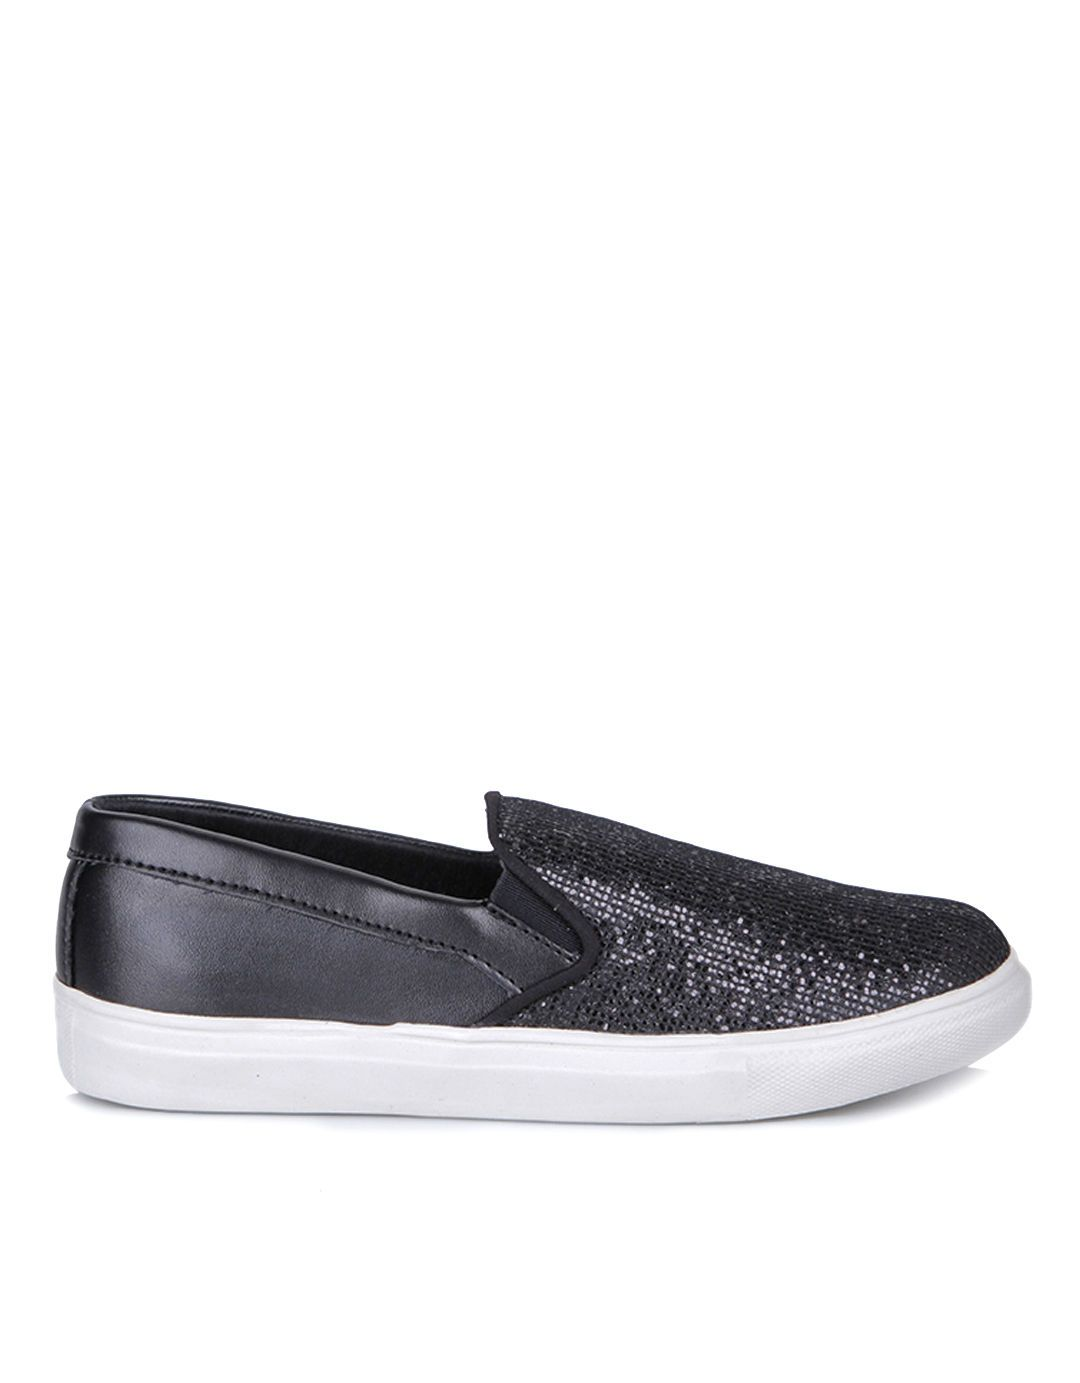 Connexion Casual Slip On Shoes Hitam Sepatu Sepatu Adidas Hitam